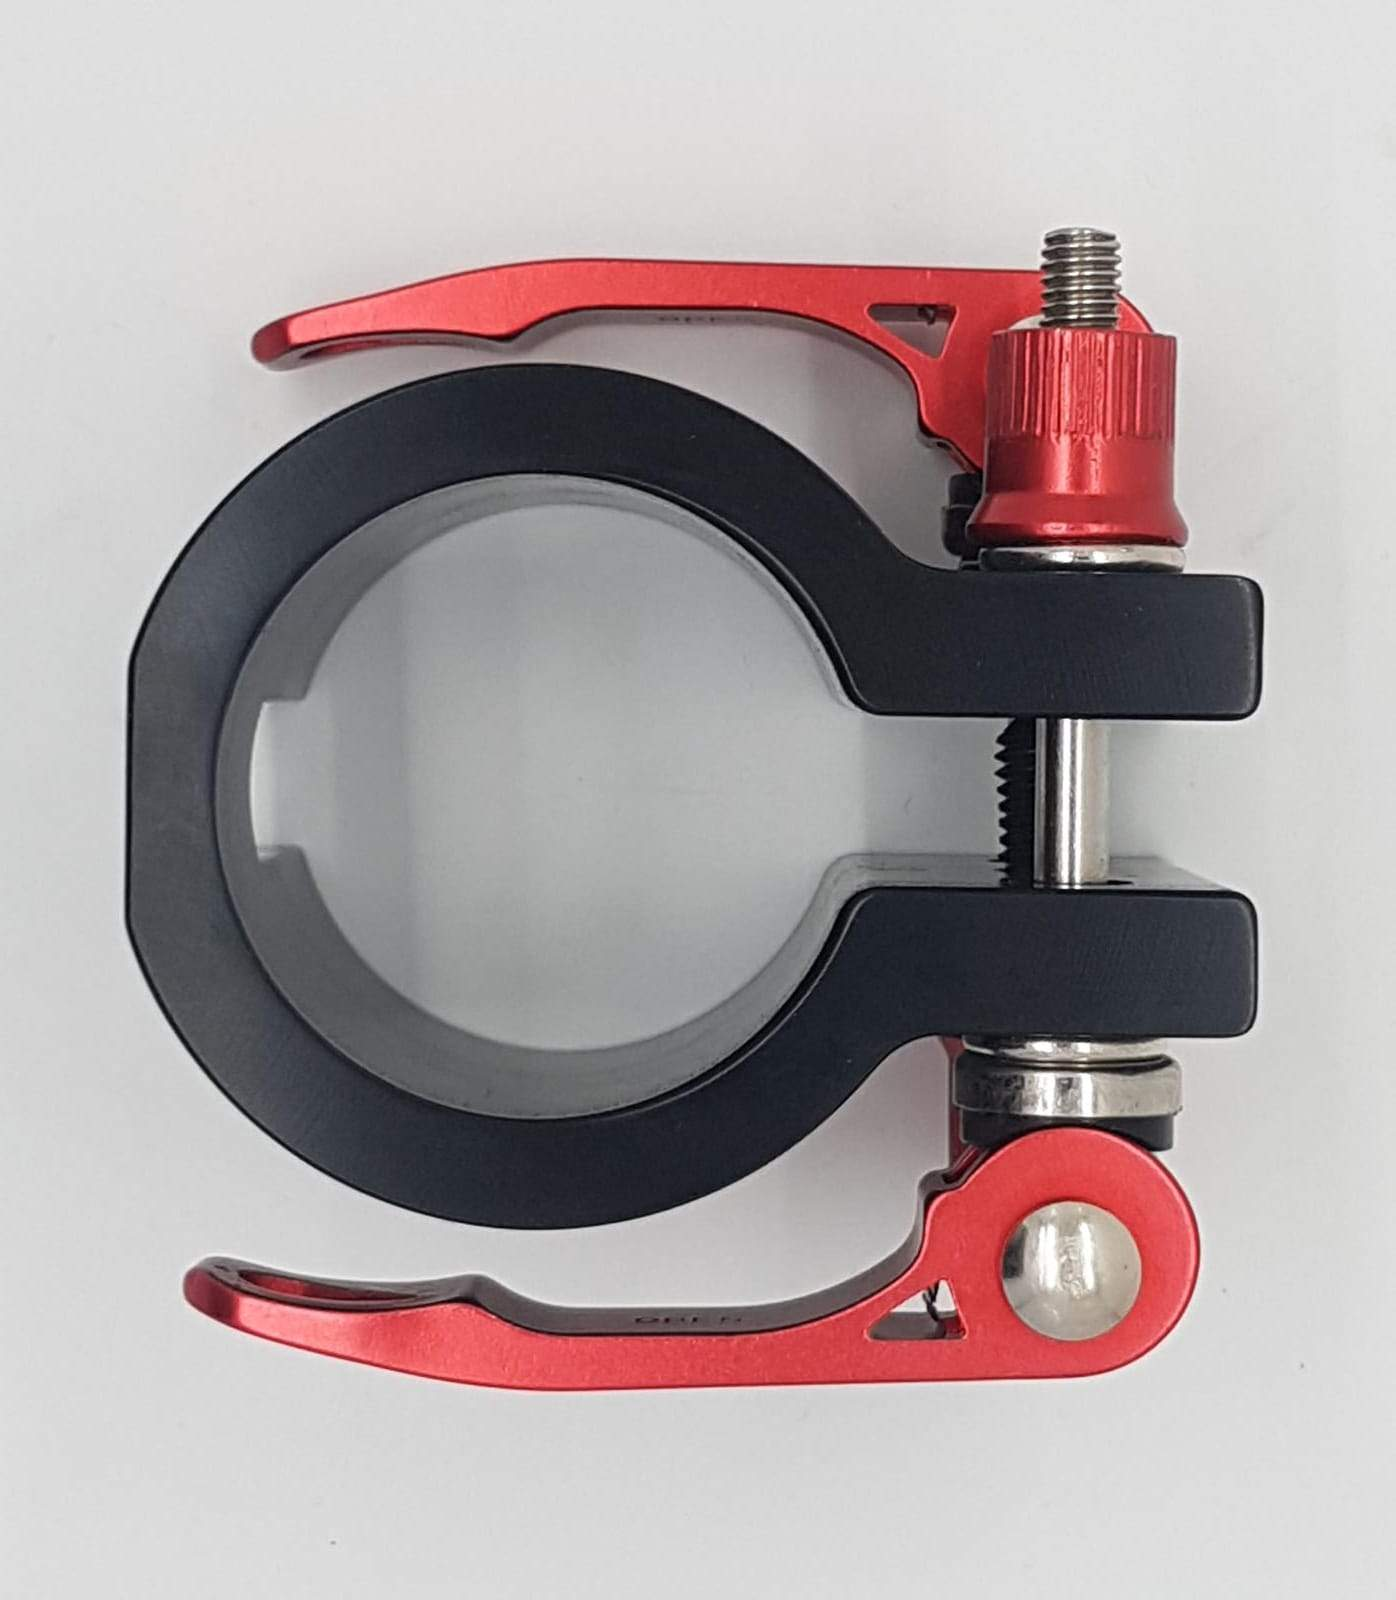 Rugged folding clamp for Zero 10X / 8X / 11X